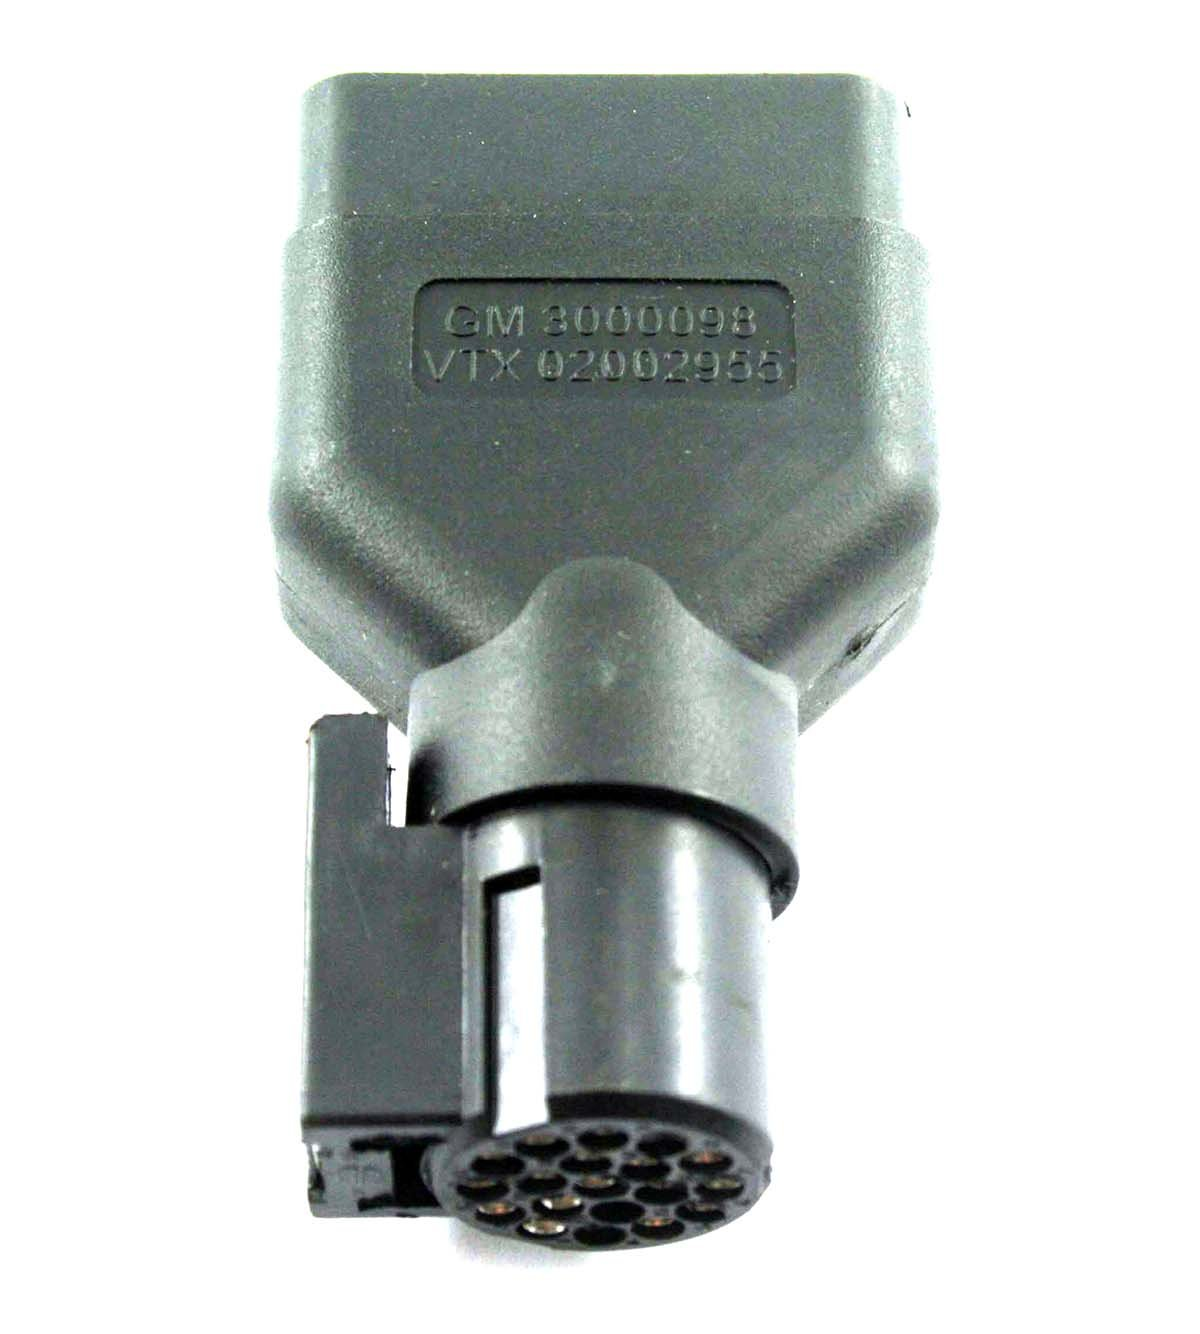 New GM TECH 2 Scanner OBD2 OBDII Adapter Connector GM 3000098 VETRONIX VTX 02002955